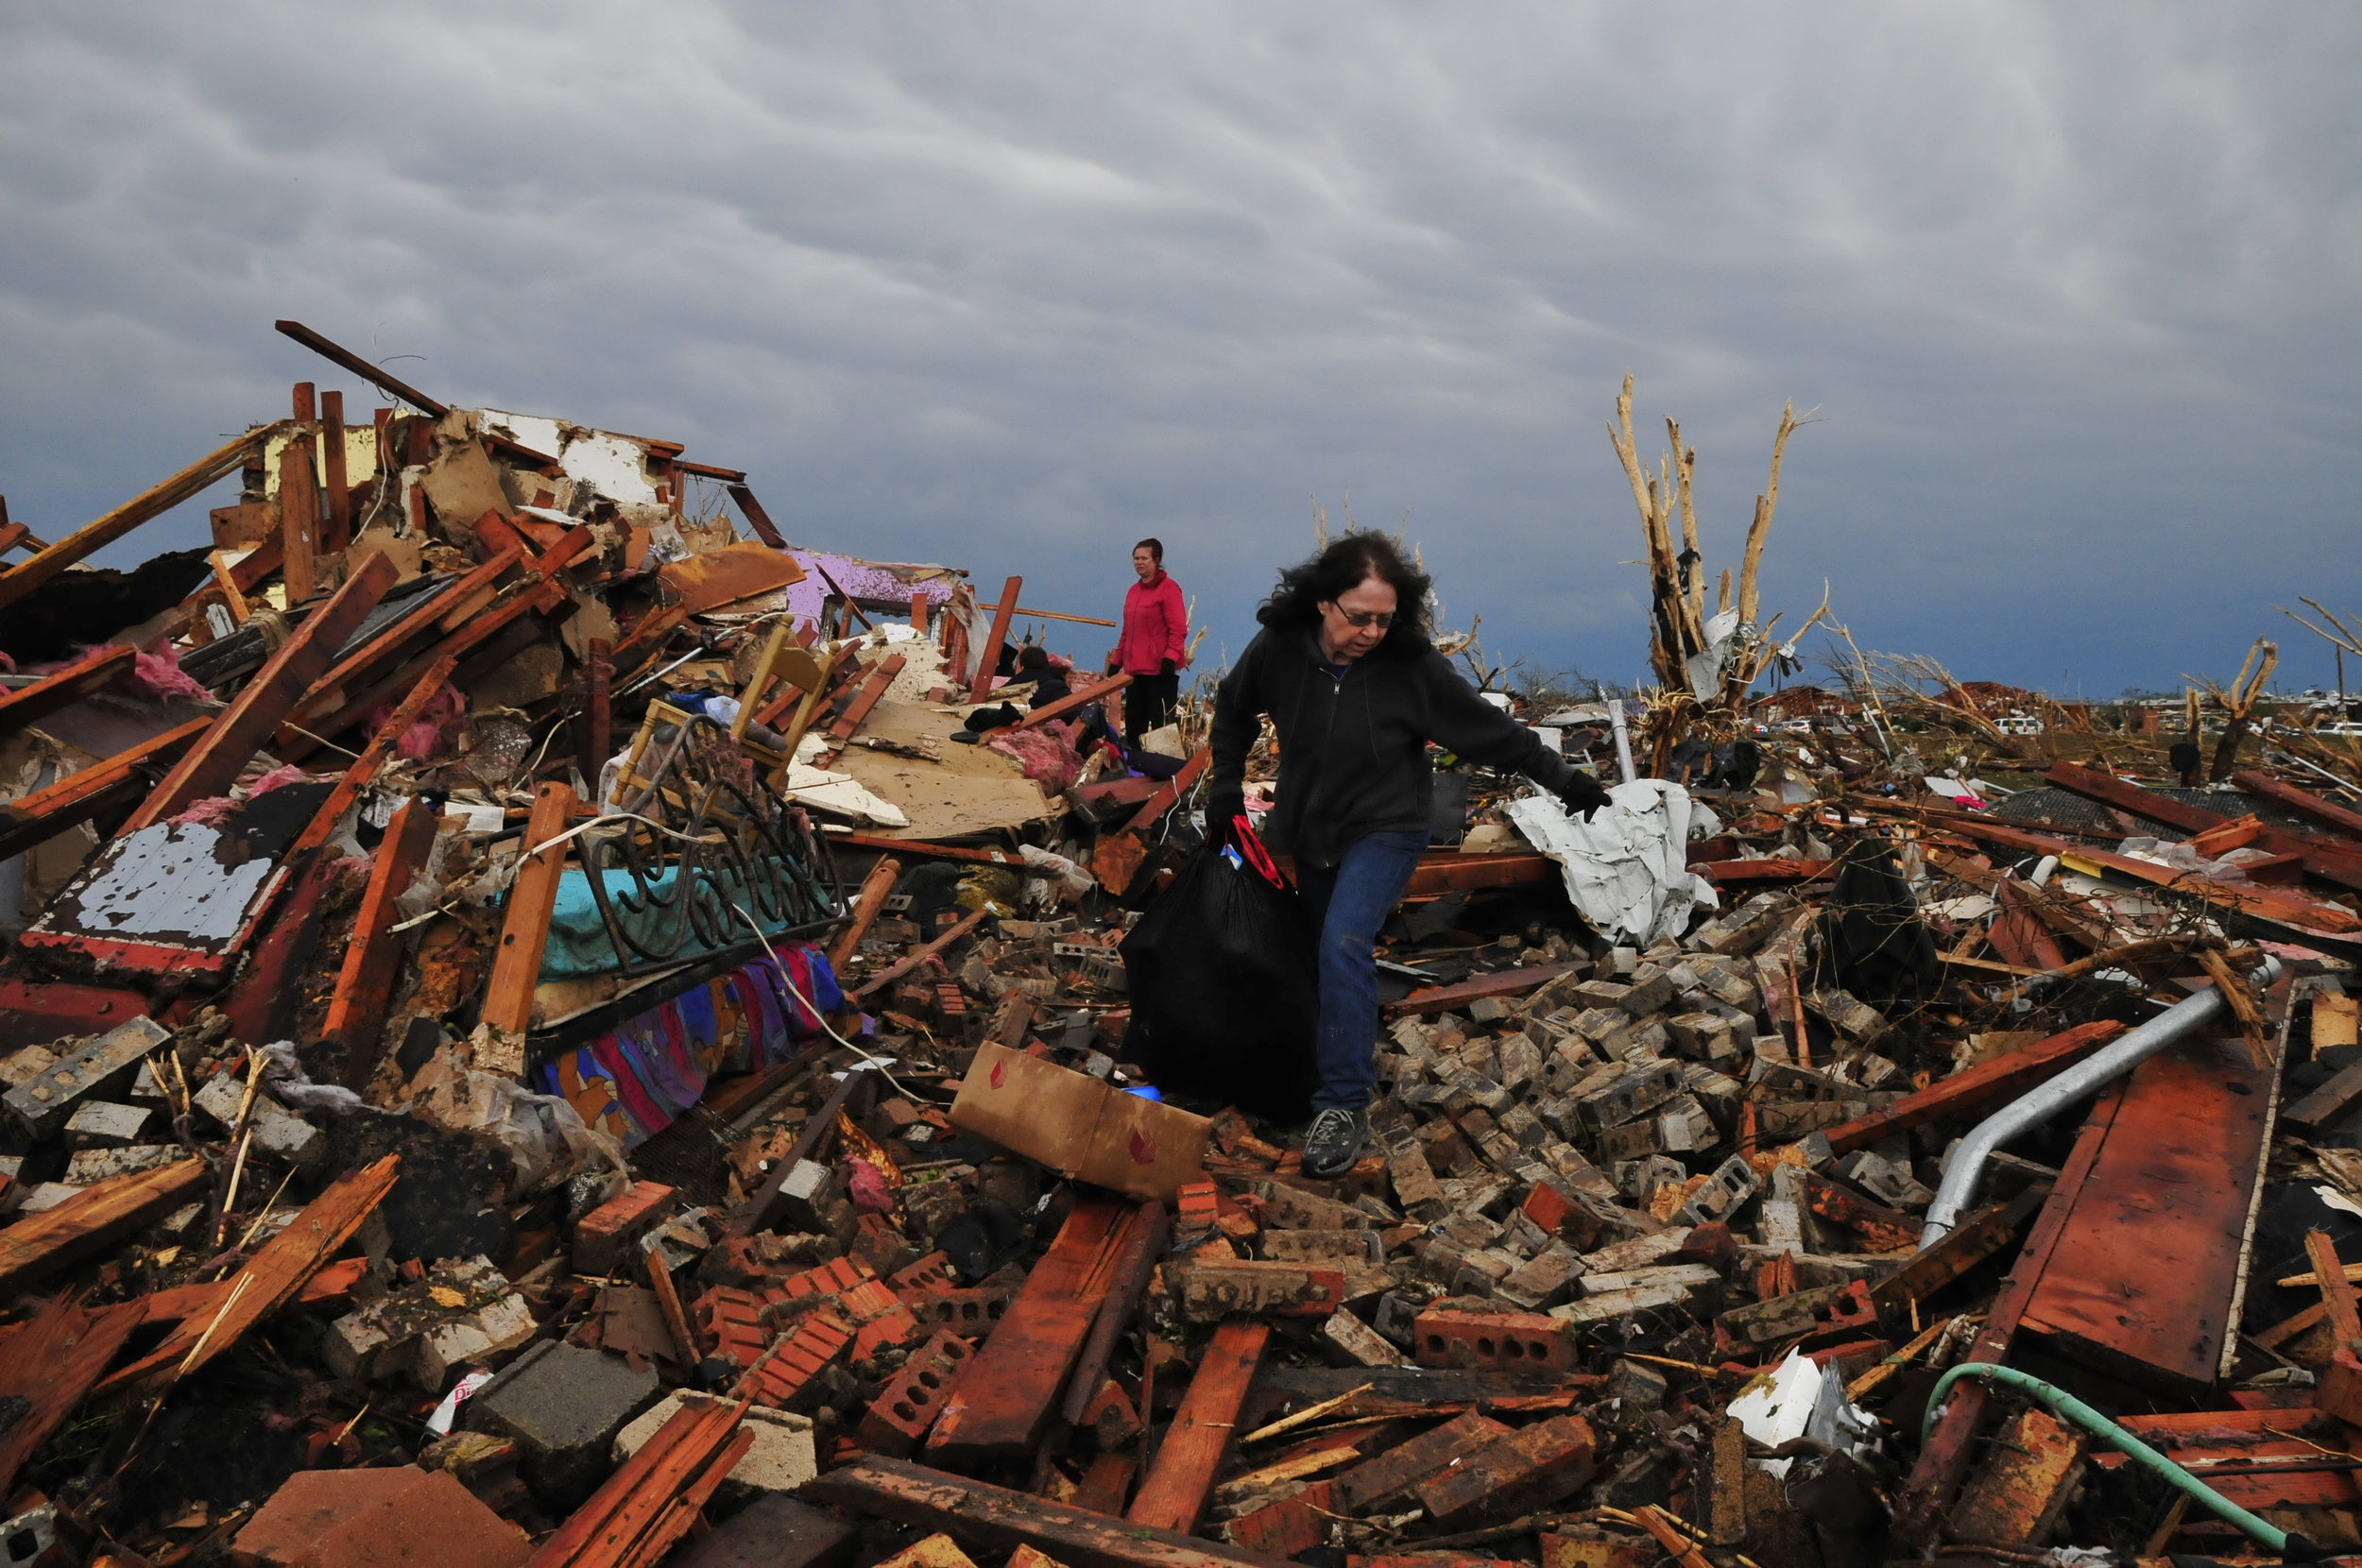 Debbie Mayhle, right, and her daughter Kristi Jones retrieve some of Debbie's belongings from her home which was in the direct path of yesterdays tornado on May, 21 in Moore Oklahoma.